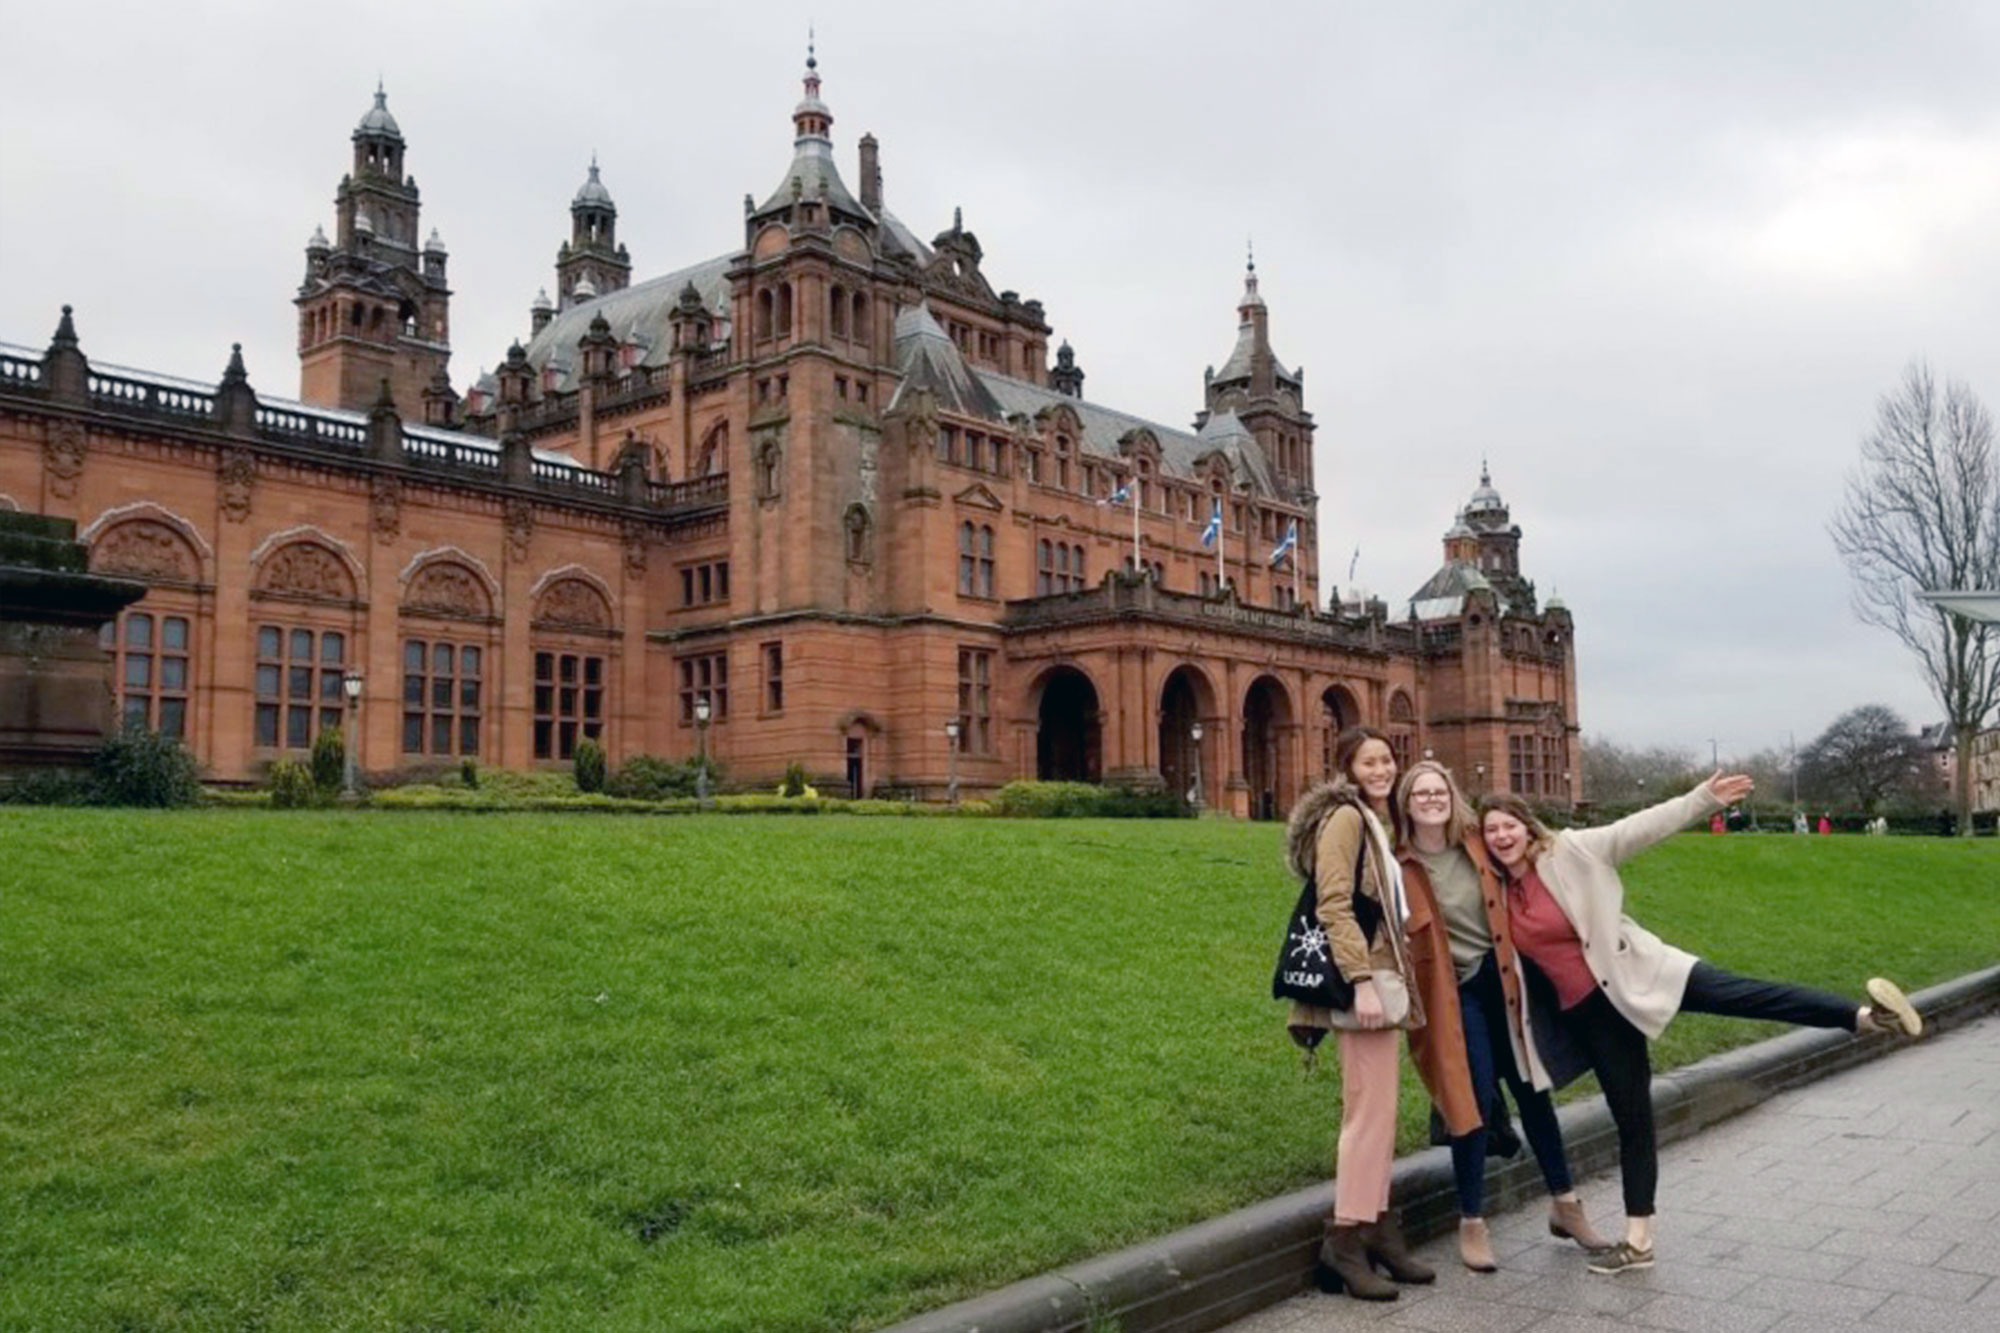 Christine Choy smiling at the camera with two friends in front of the Kelvingrove Museum, Glasgow